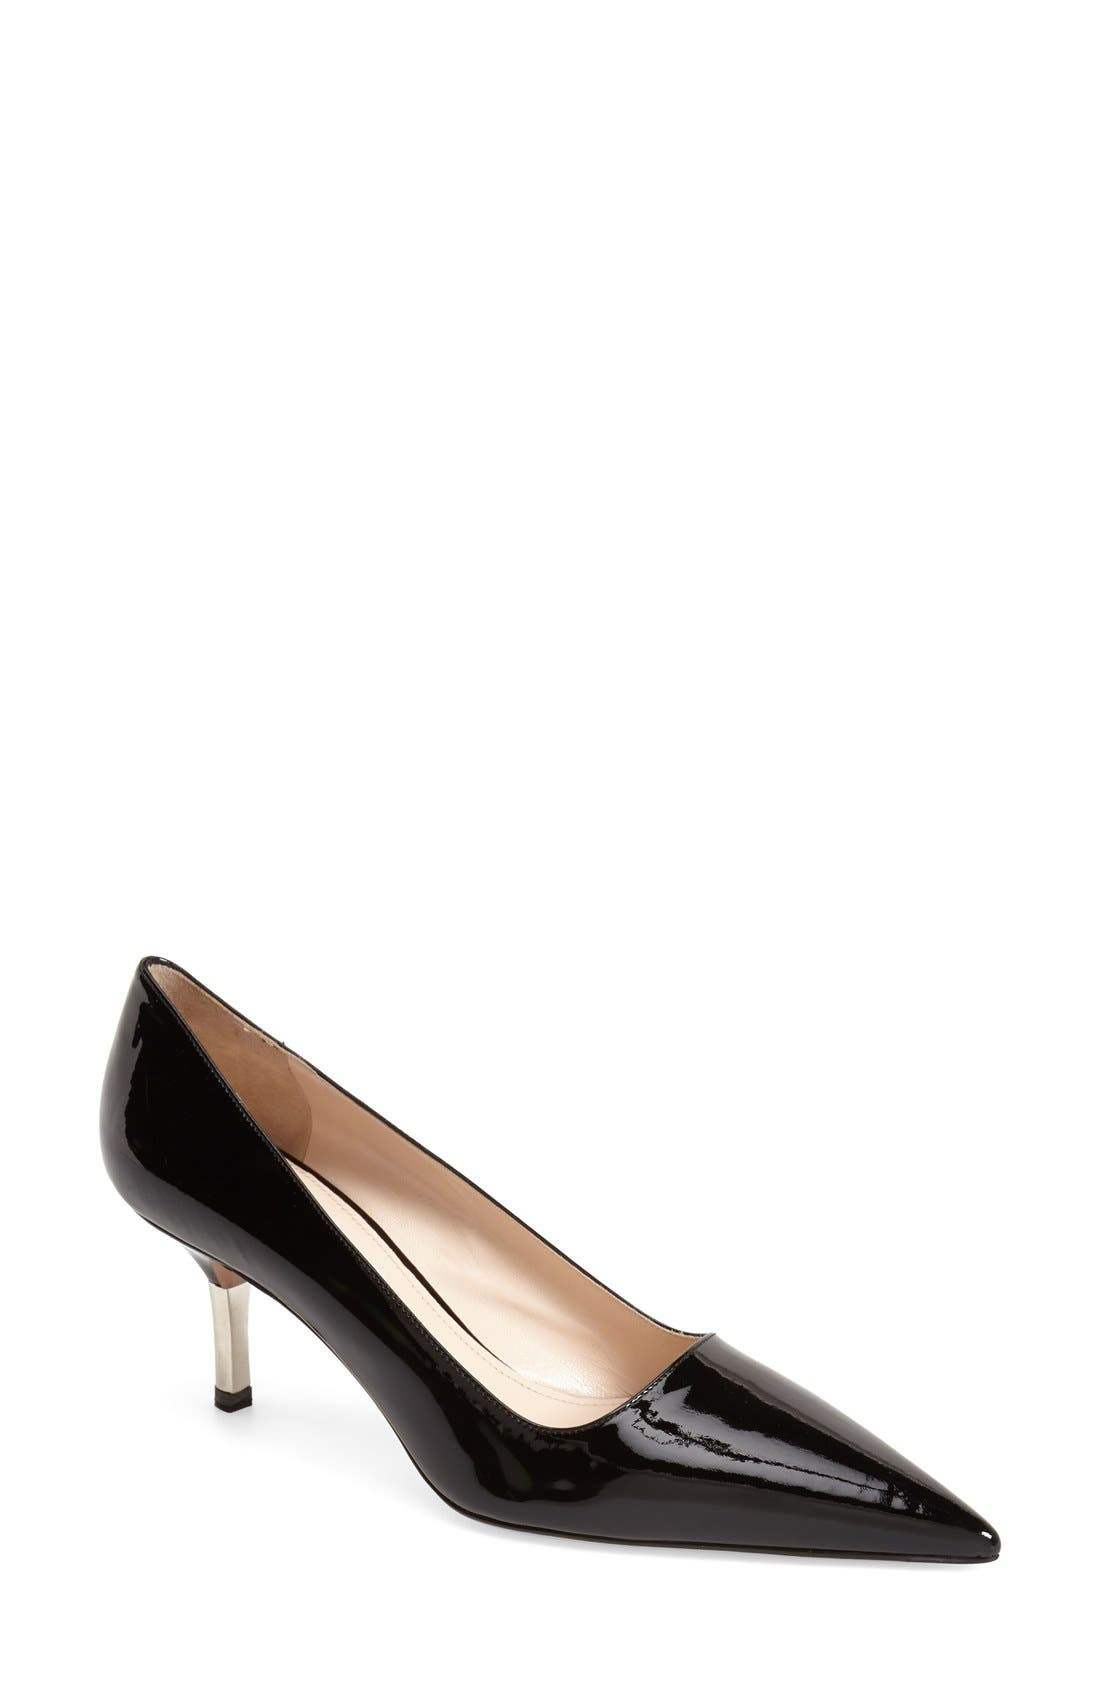 Alternate Image 1 Selected - Prada Metal Heel Pump (Women)